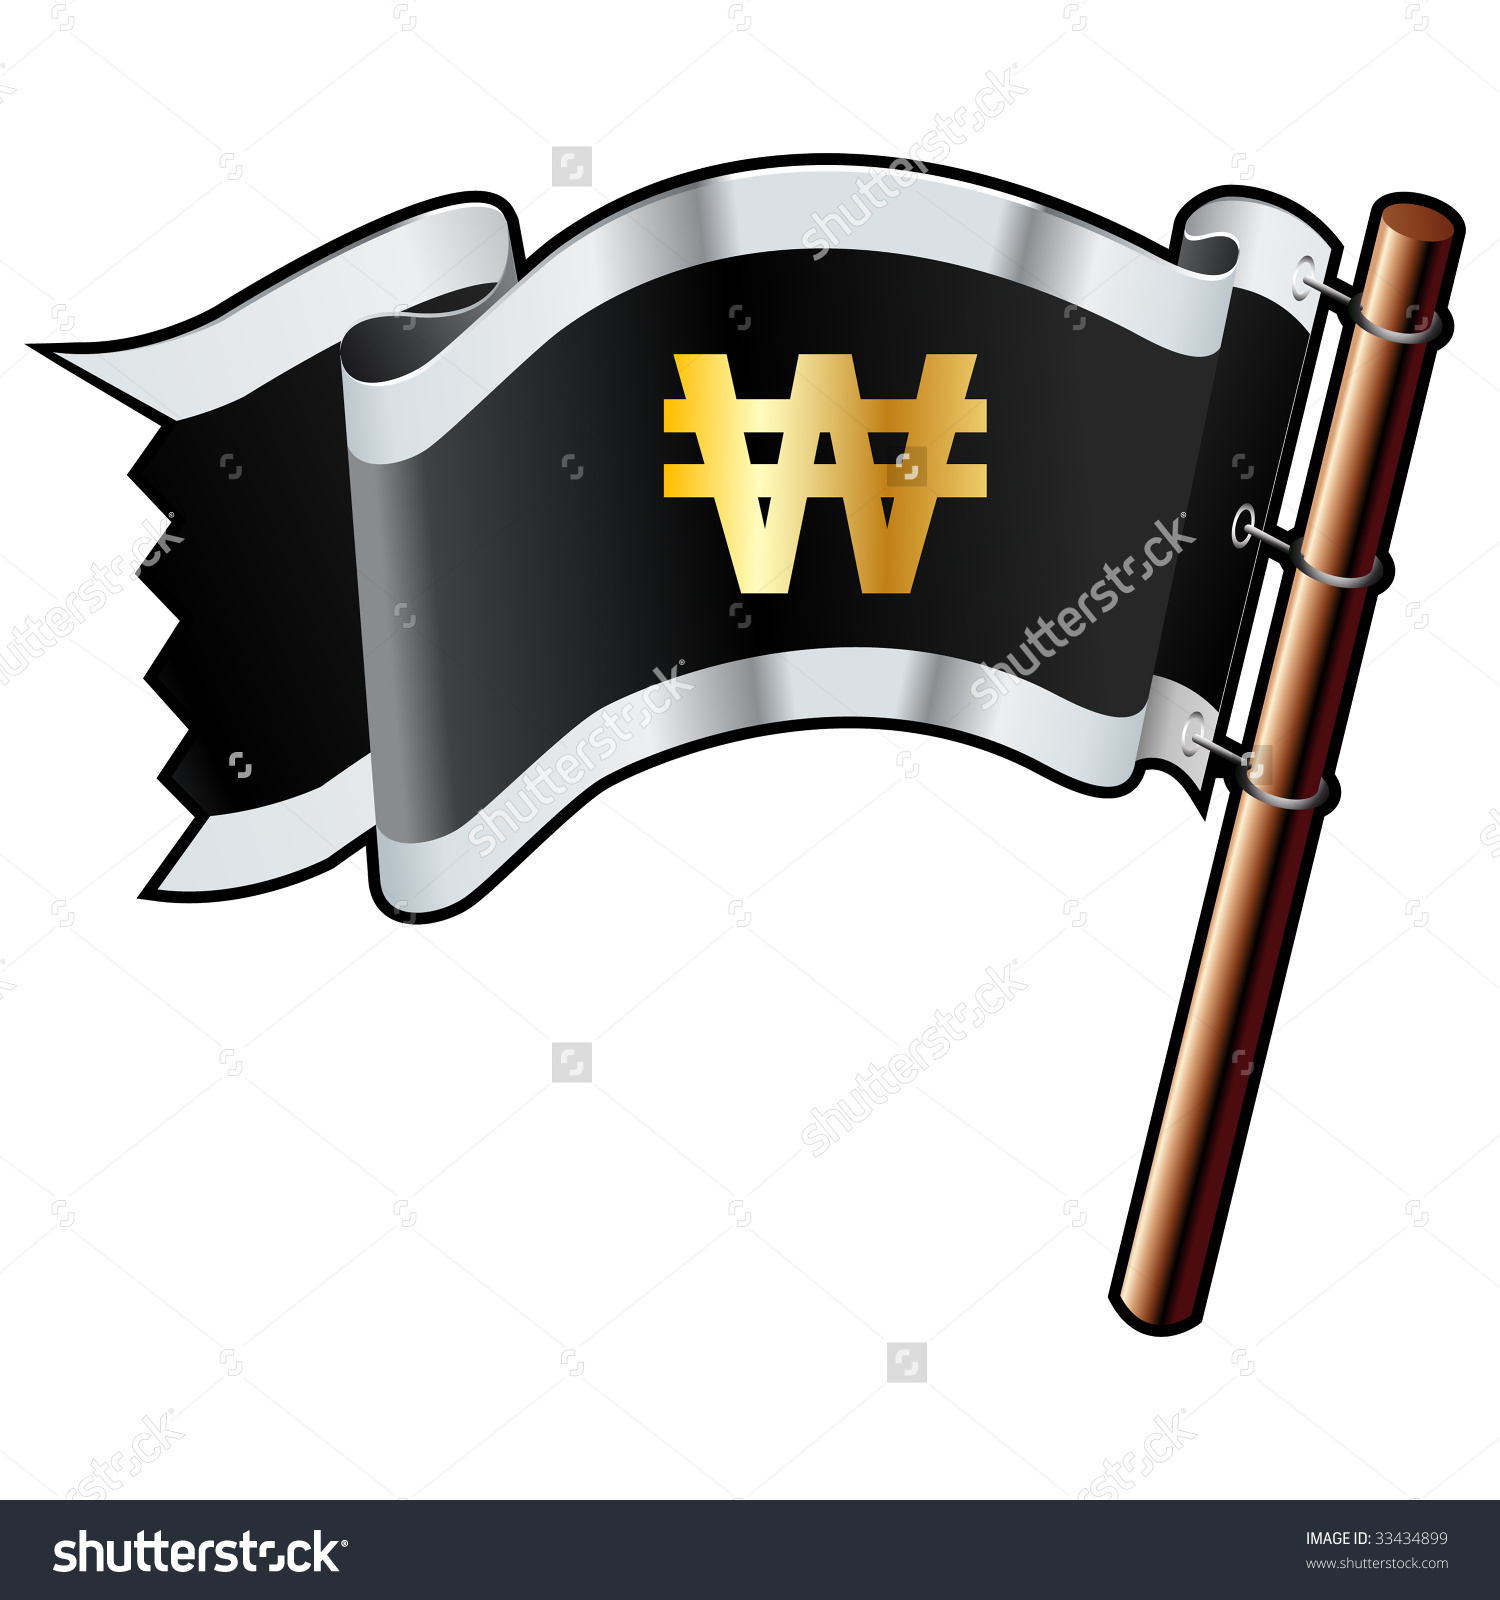 Korean Won Currency Symbol On Black, Silver, And Gold Vector Flag.